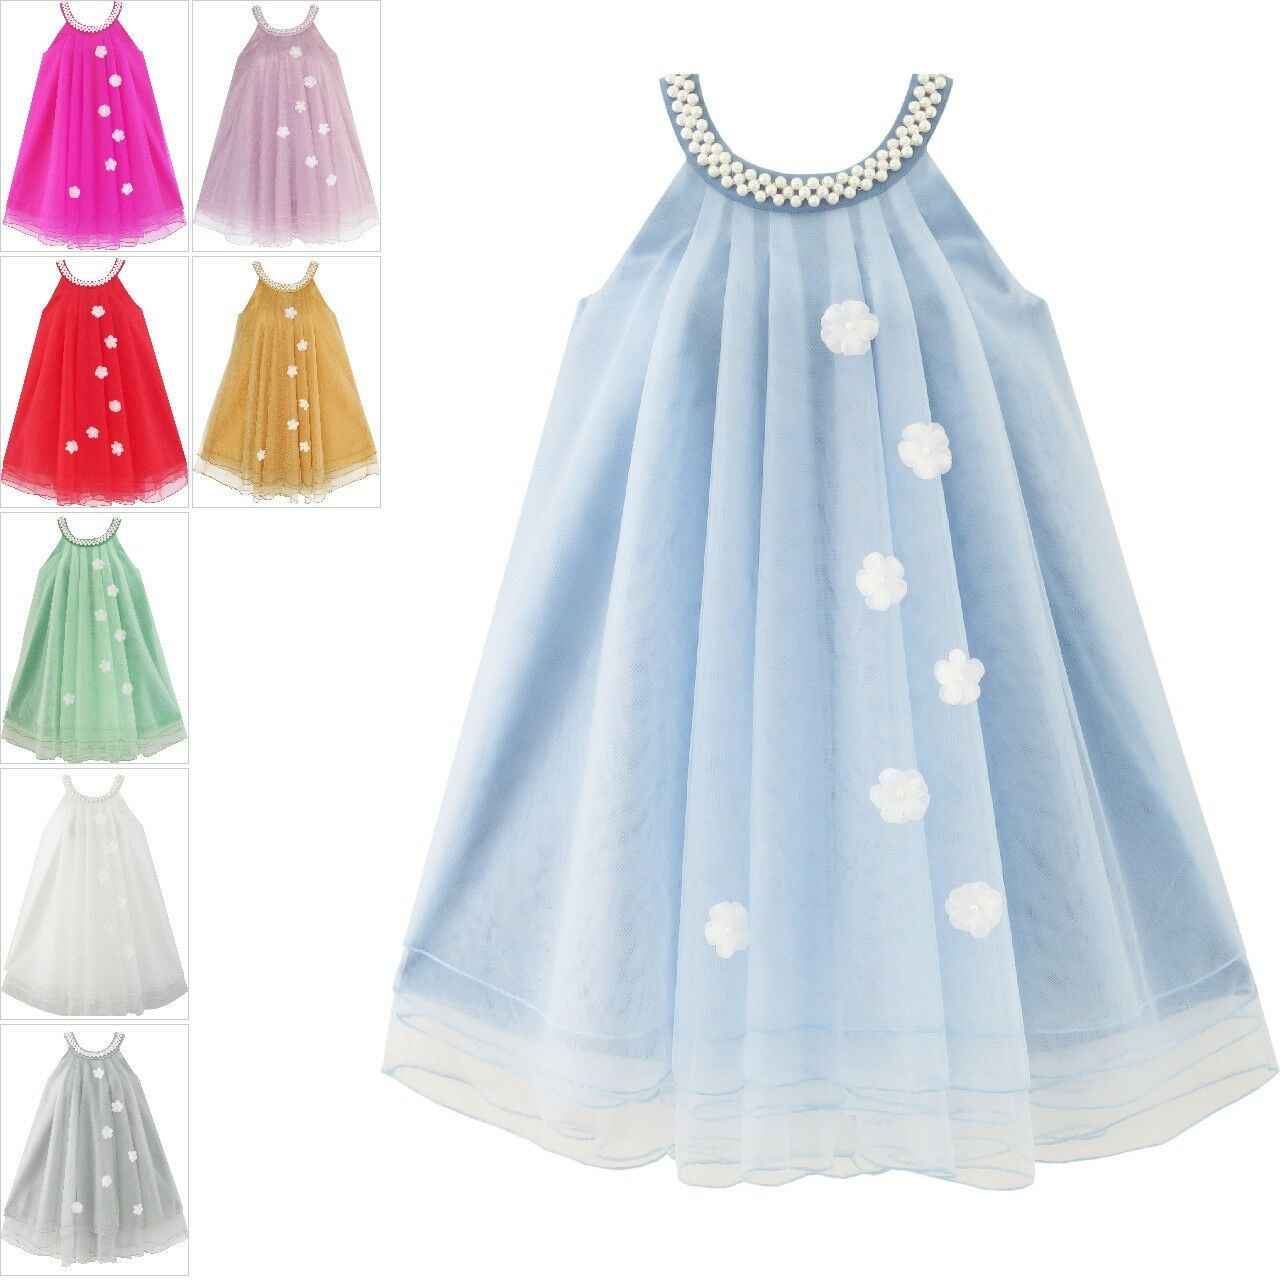 Flower Girl Dress Sparkling Pearl Belt Gray Wedding Bridesmaid Pageant Size 3-14